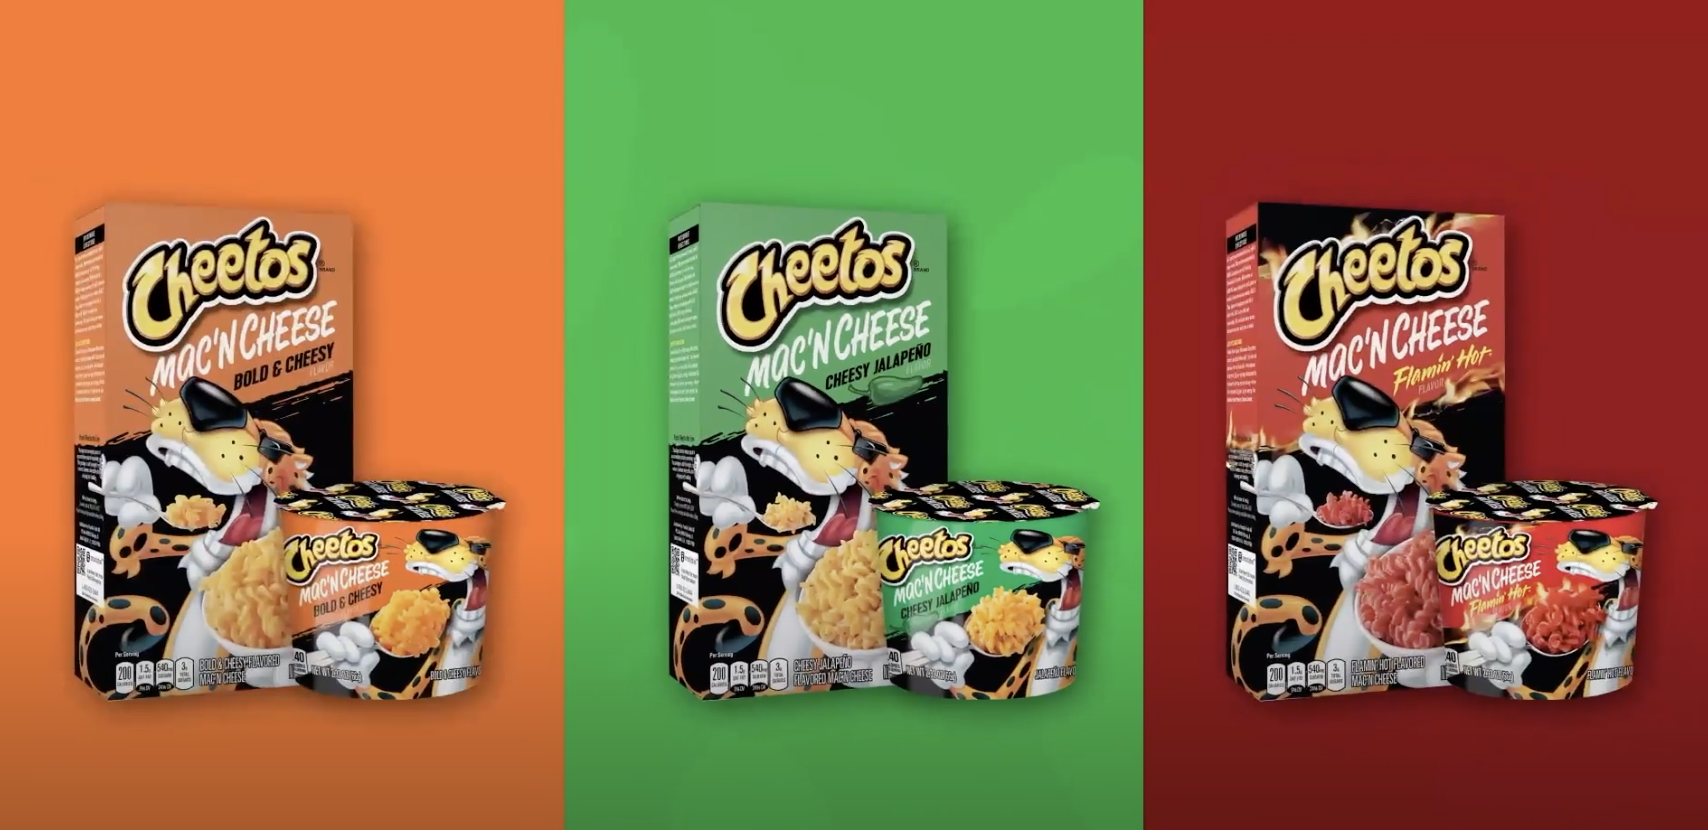 Cheetos promotional ad with all the mac n cheese flavors